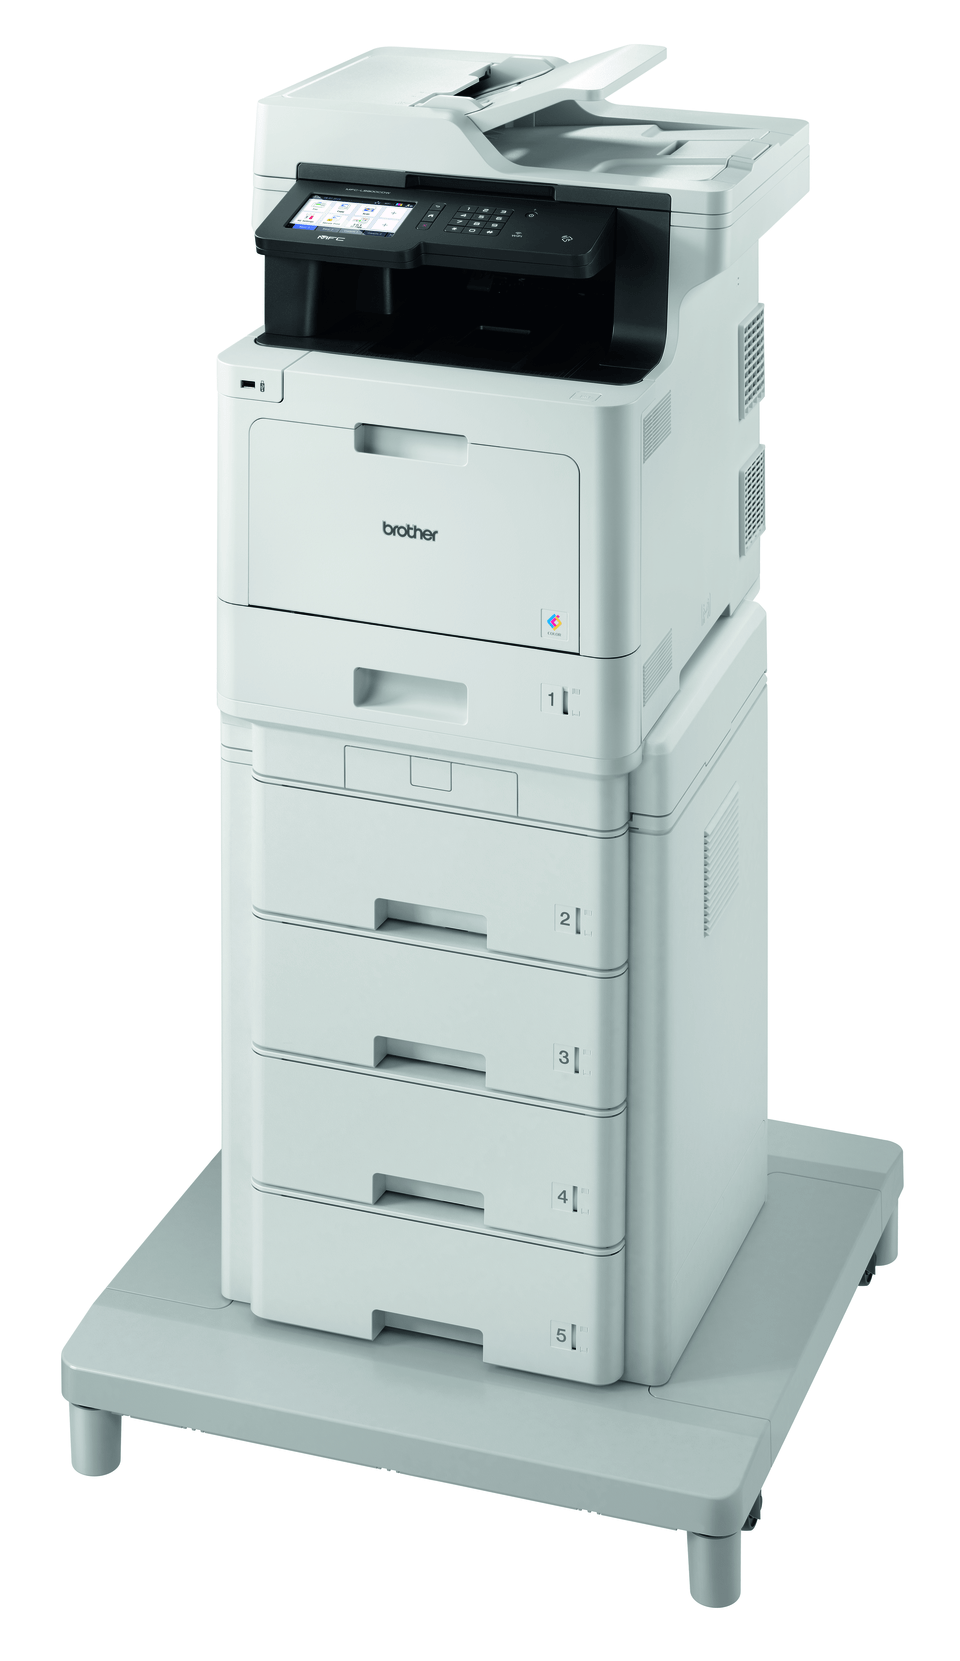 MFC-L8900CDWMT Professional Colour, Duplex, Wireless Laser All-in-one Printer + Tower Tray + Tower Tray Connector 2